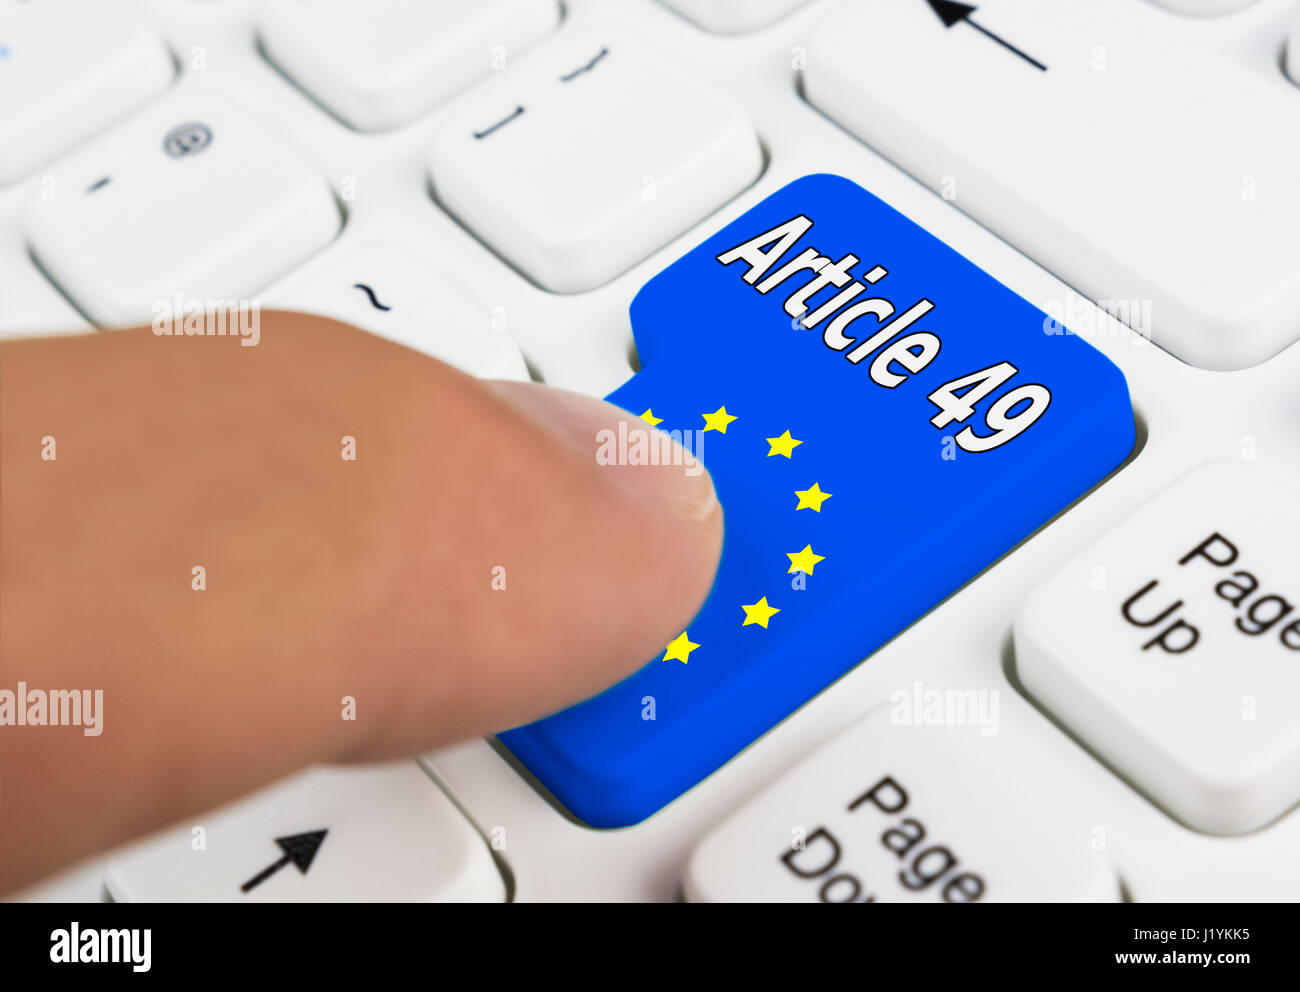 Finger pressing an Article 49 button to invoke Article 49 of the Lisbon Treaty for entering the EU. - Stock Image